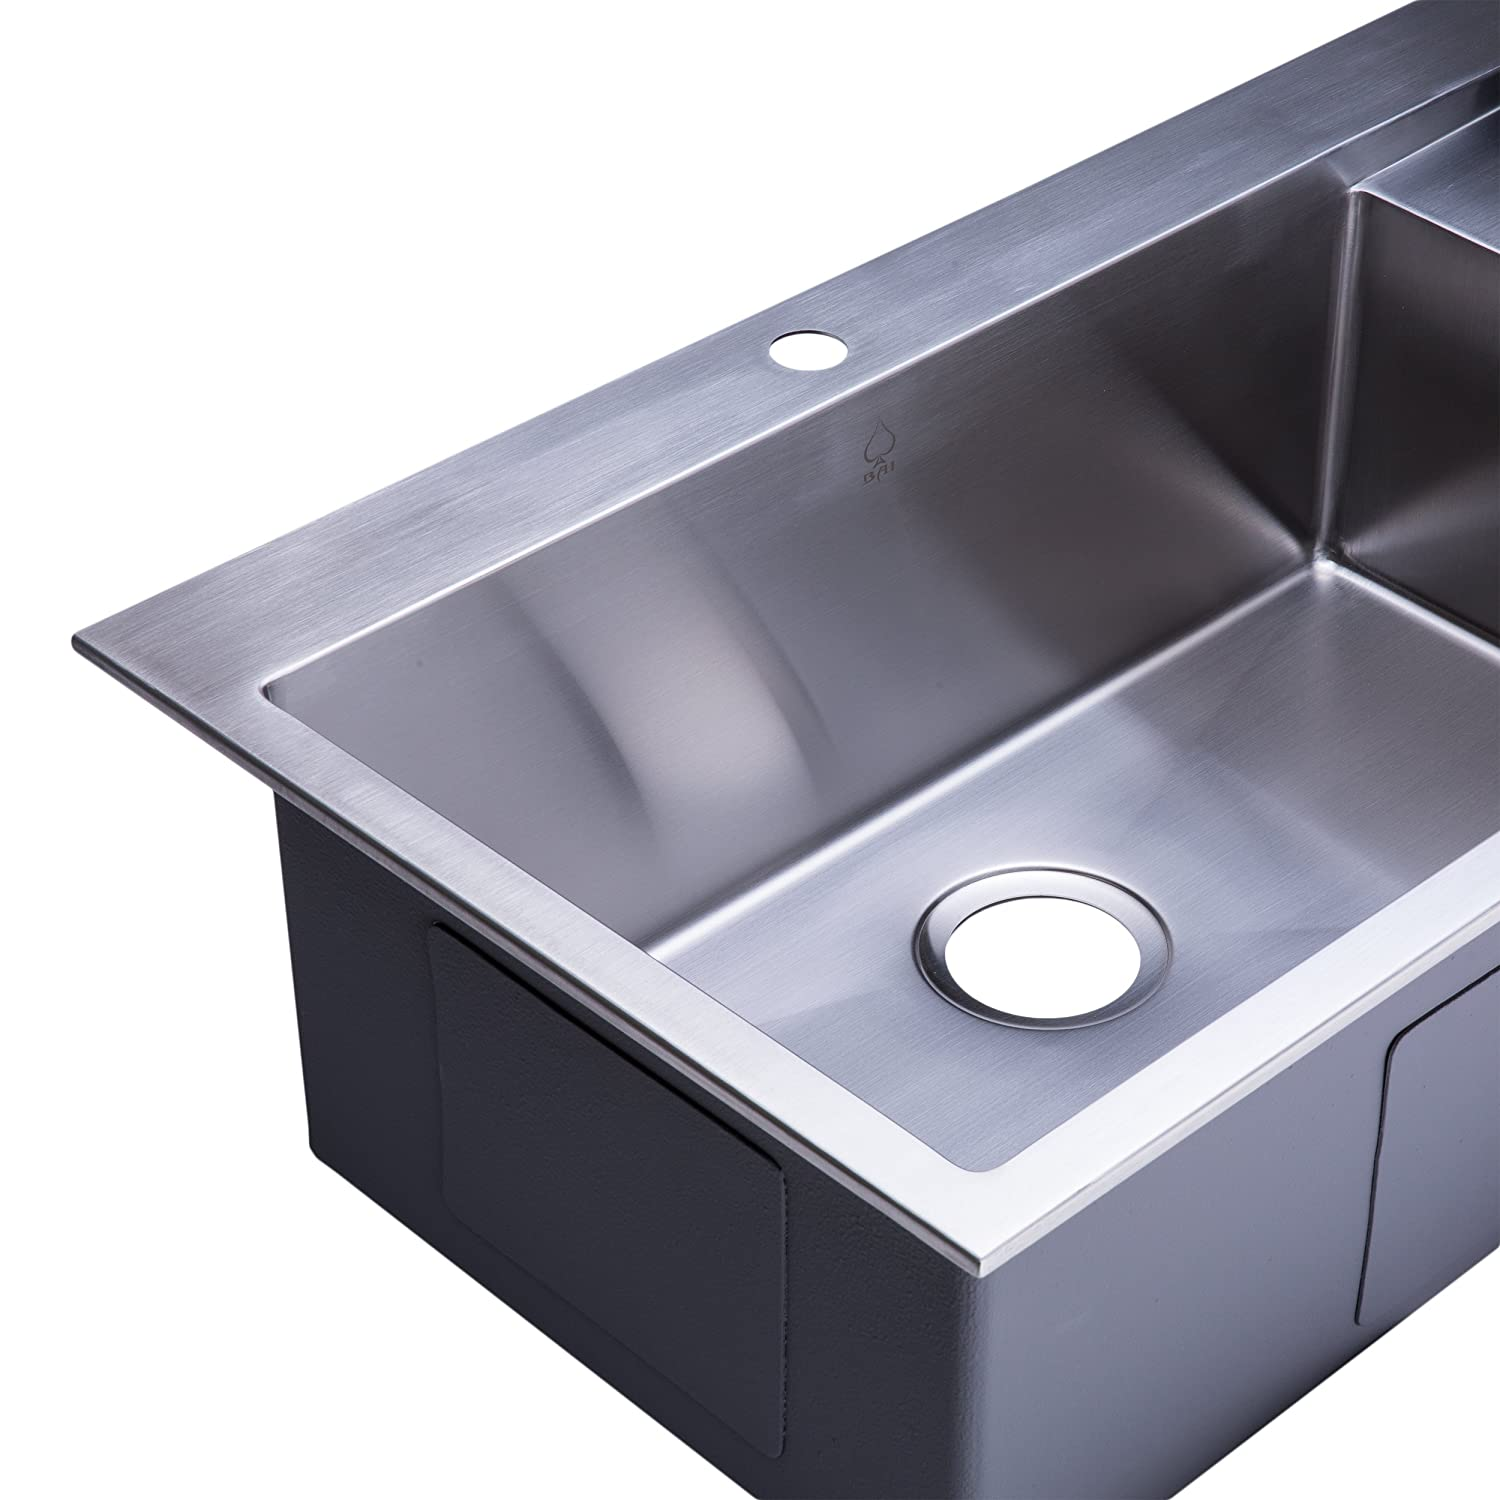 bai 1233   48   handmade stainless steel kitchen sink single bowl with drainboard top mount 16 gauge     amazon com bai 1233   48   handmade stainless steel kitchen sink single bowl      rh   amazon com